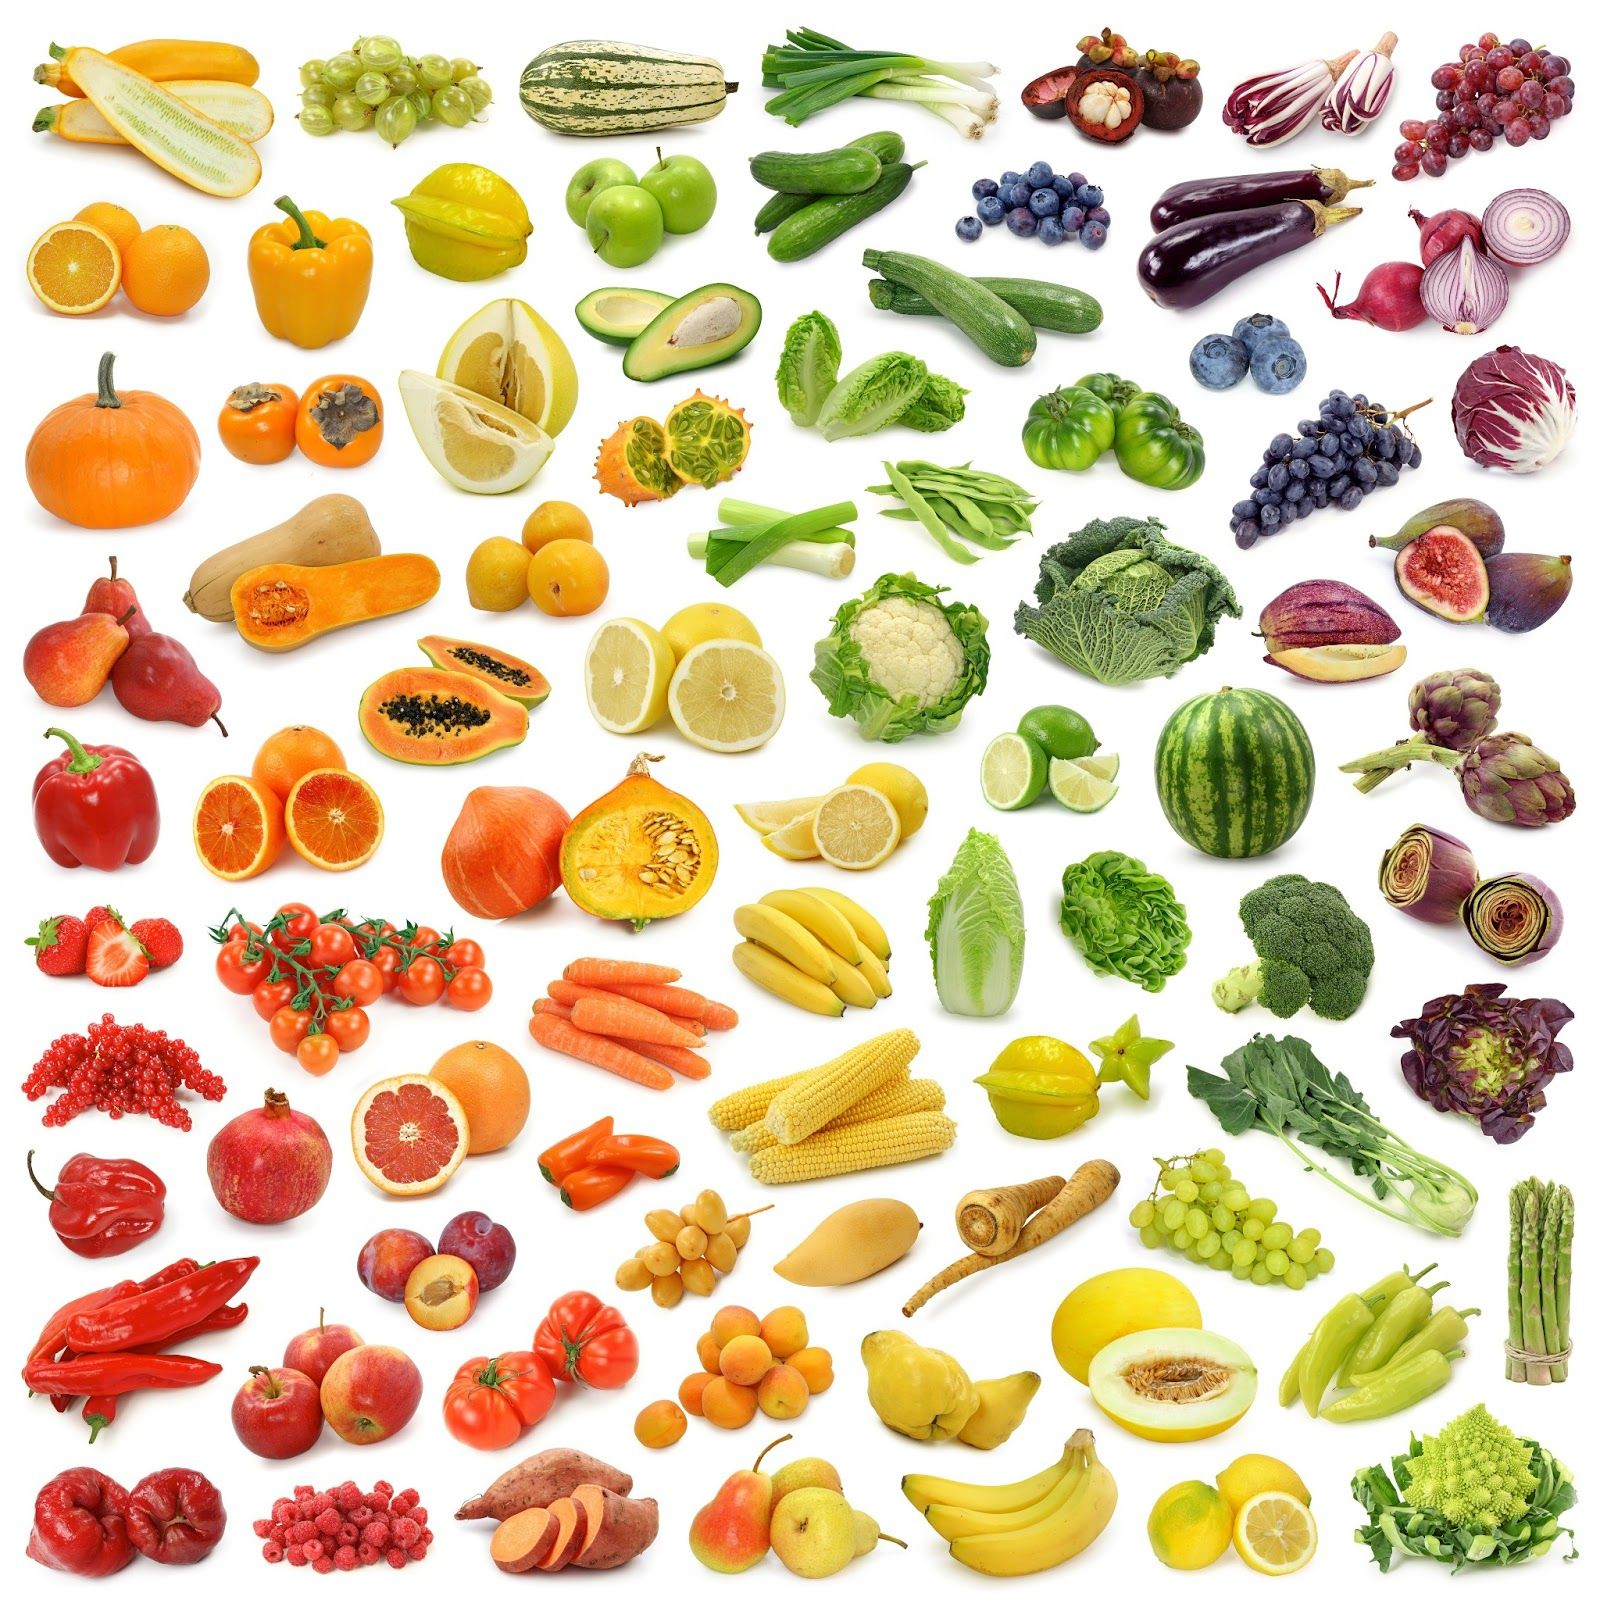 vegetables pictures and names - Google Search | Food Stuff ...